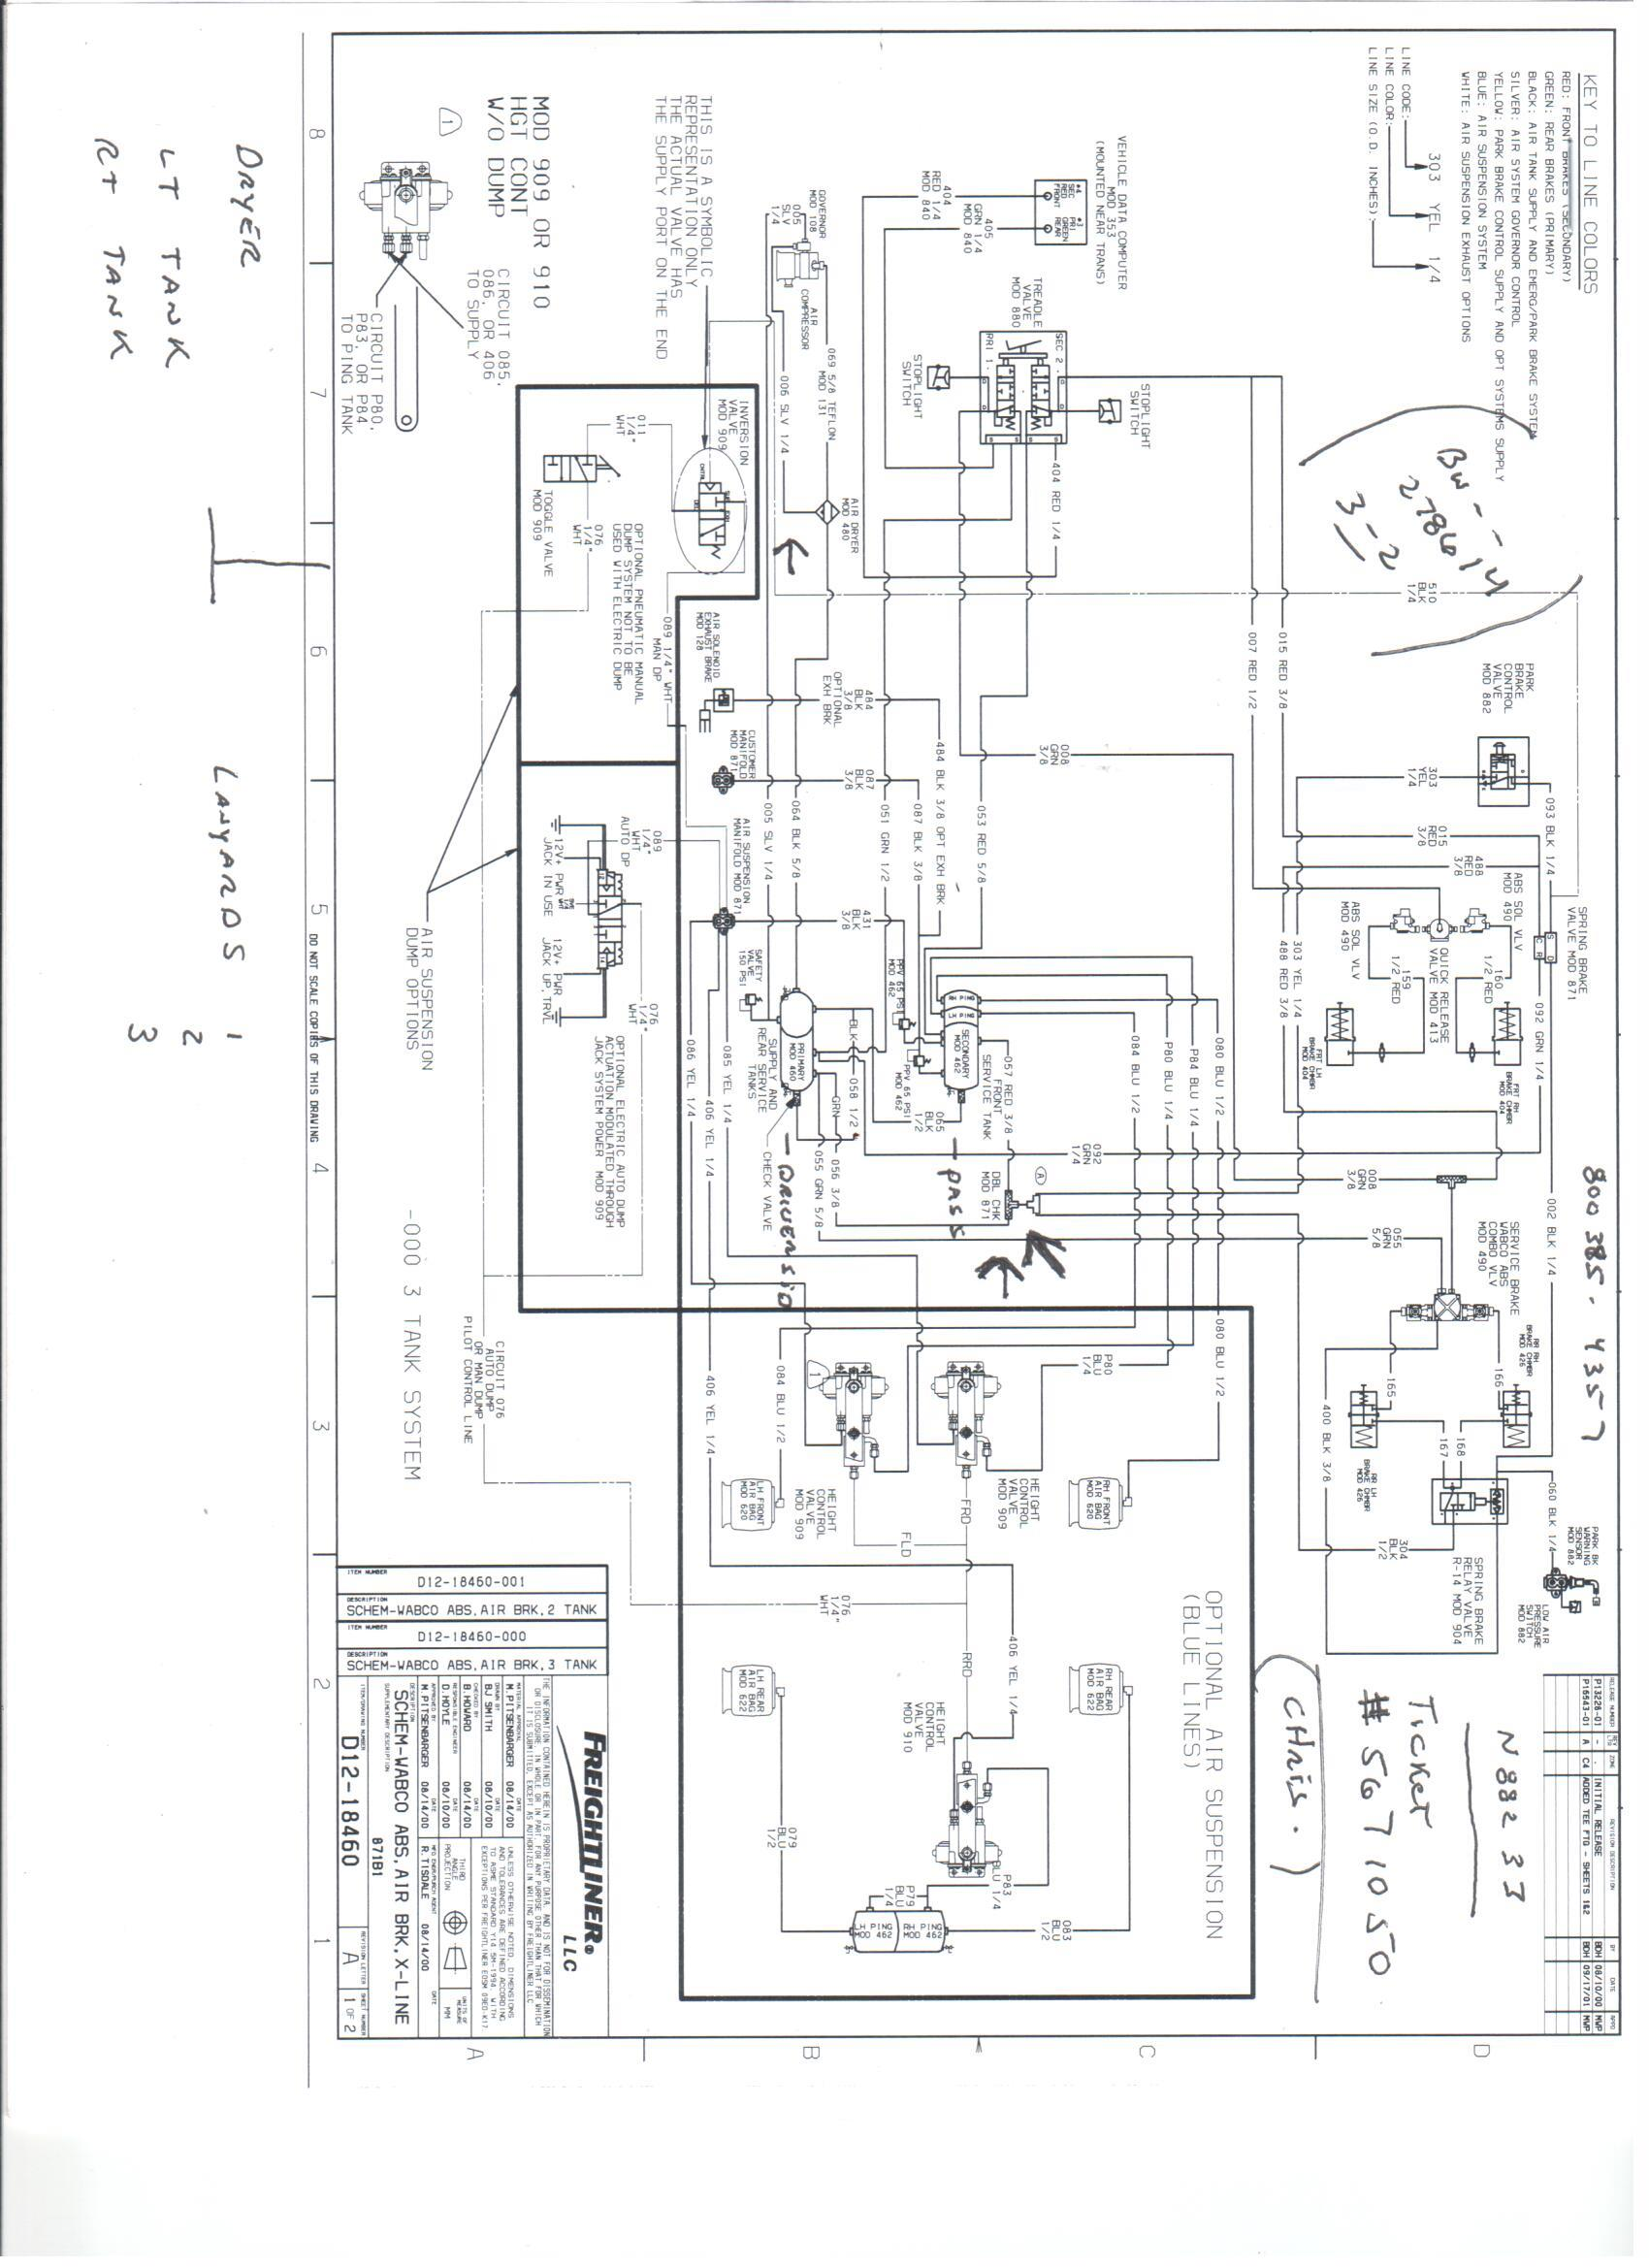 RW_8026] Rv Freightliner Xc Chassis Diagram On Freightliner M2 Wiring  Diagrams Download DiagramBemua Xortanet Ungo Intel Rine Pical Estep Kicep Mohammedshrine Librar  Wiring 101